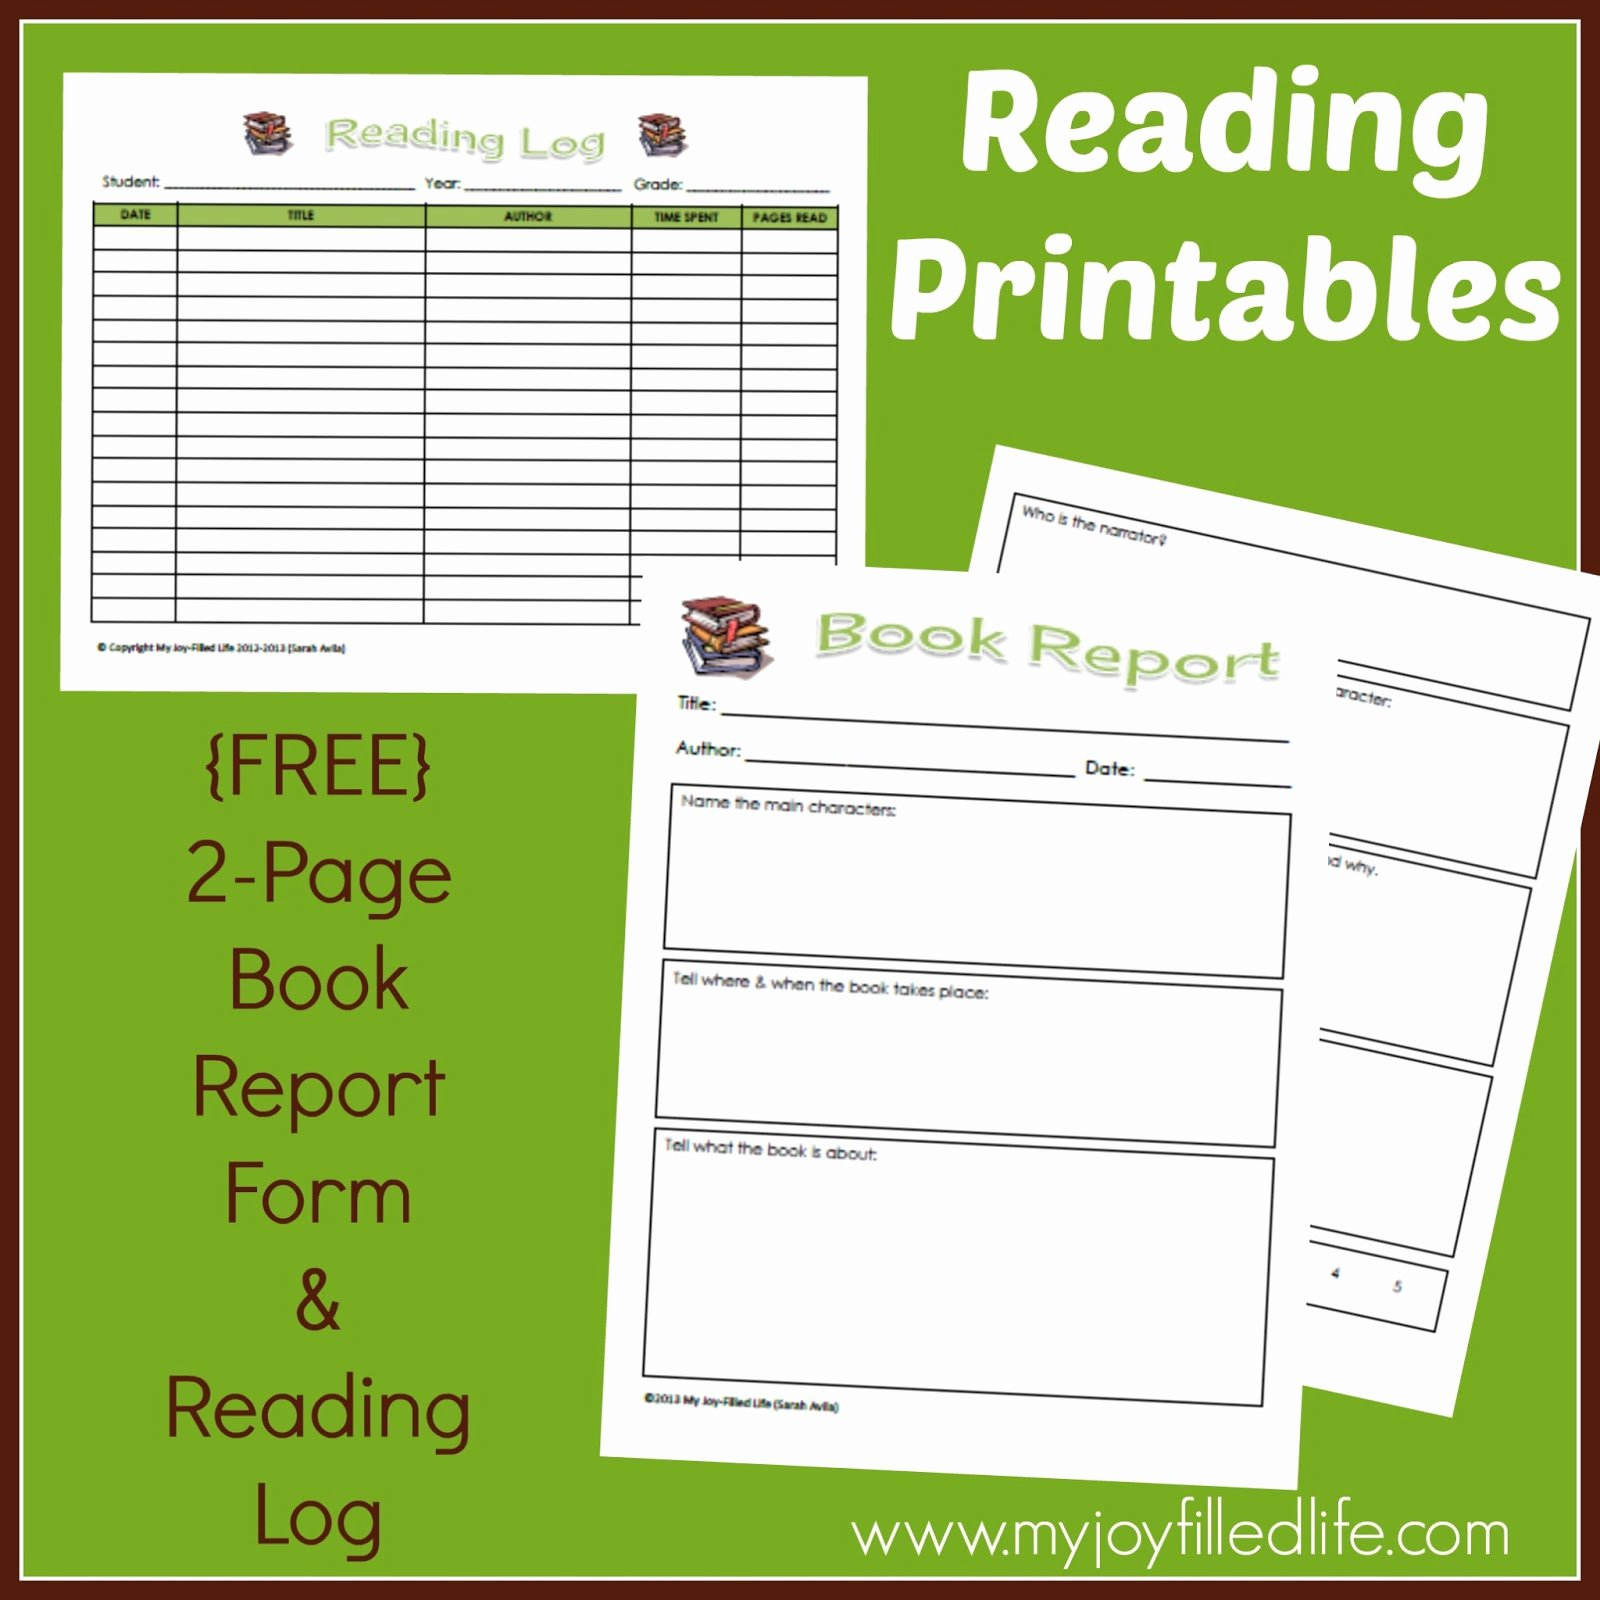 Free Book Report forms New Free Reading Log & Book Report form My Joy Filled Life